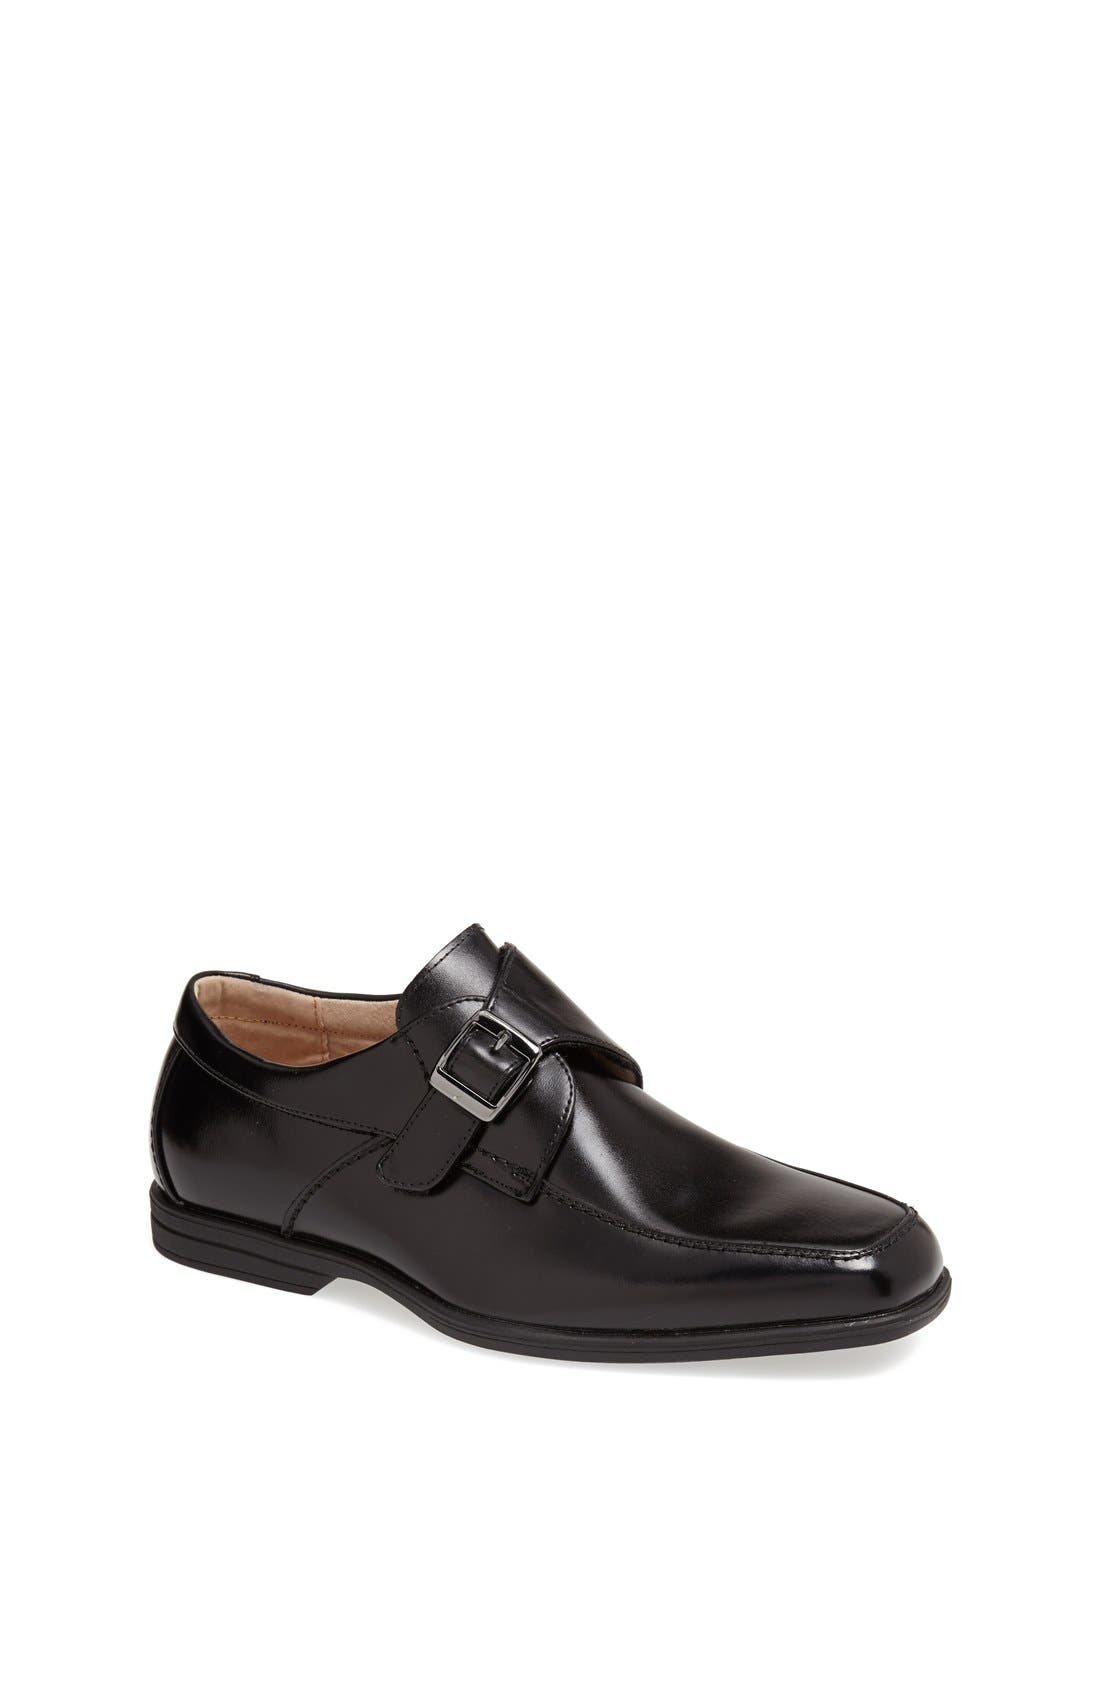 'Reveal' Monk Strap Slip-On,                             Main thumbnail 1, color,                             Black